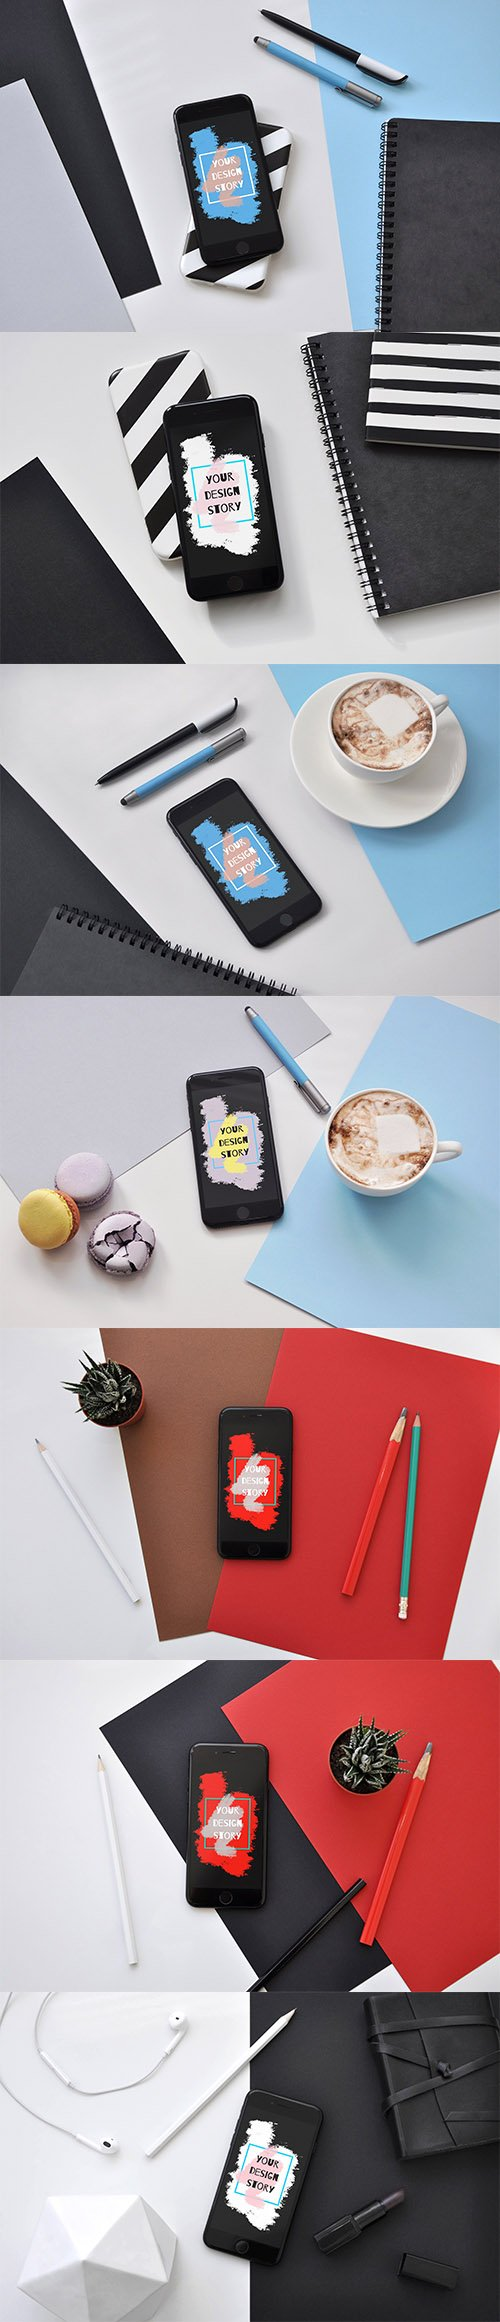 iPhone 7 Black - 7 PSD Mockups - CM 1371490